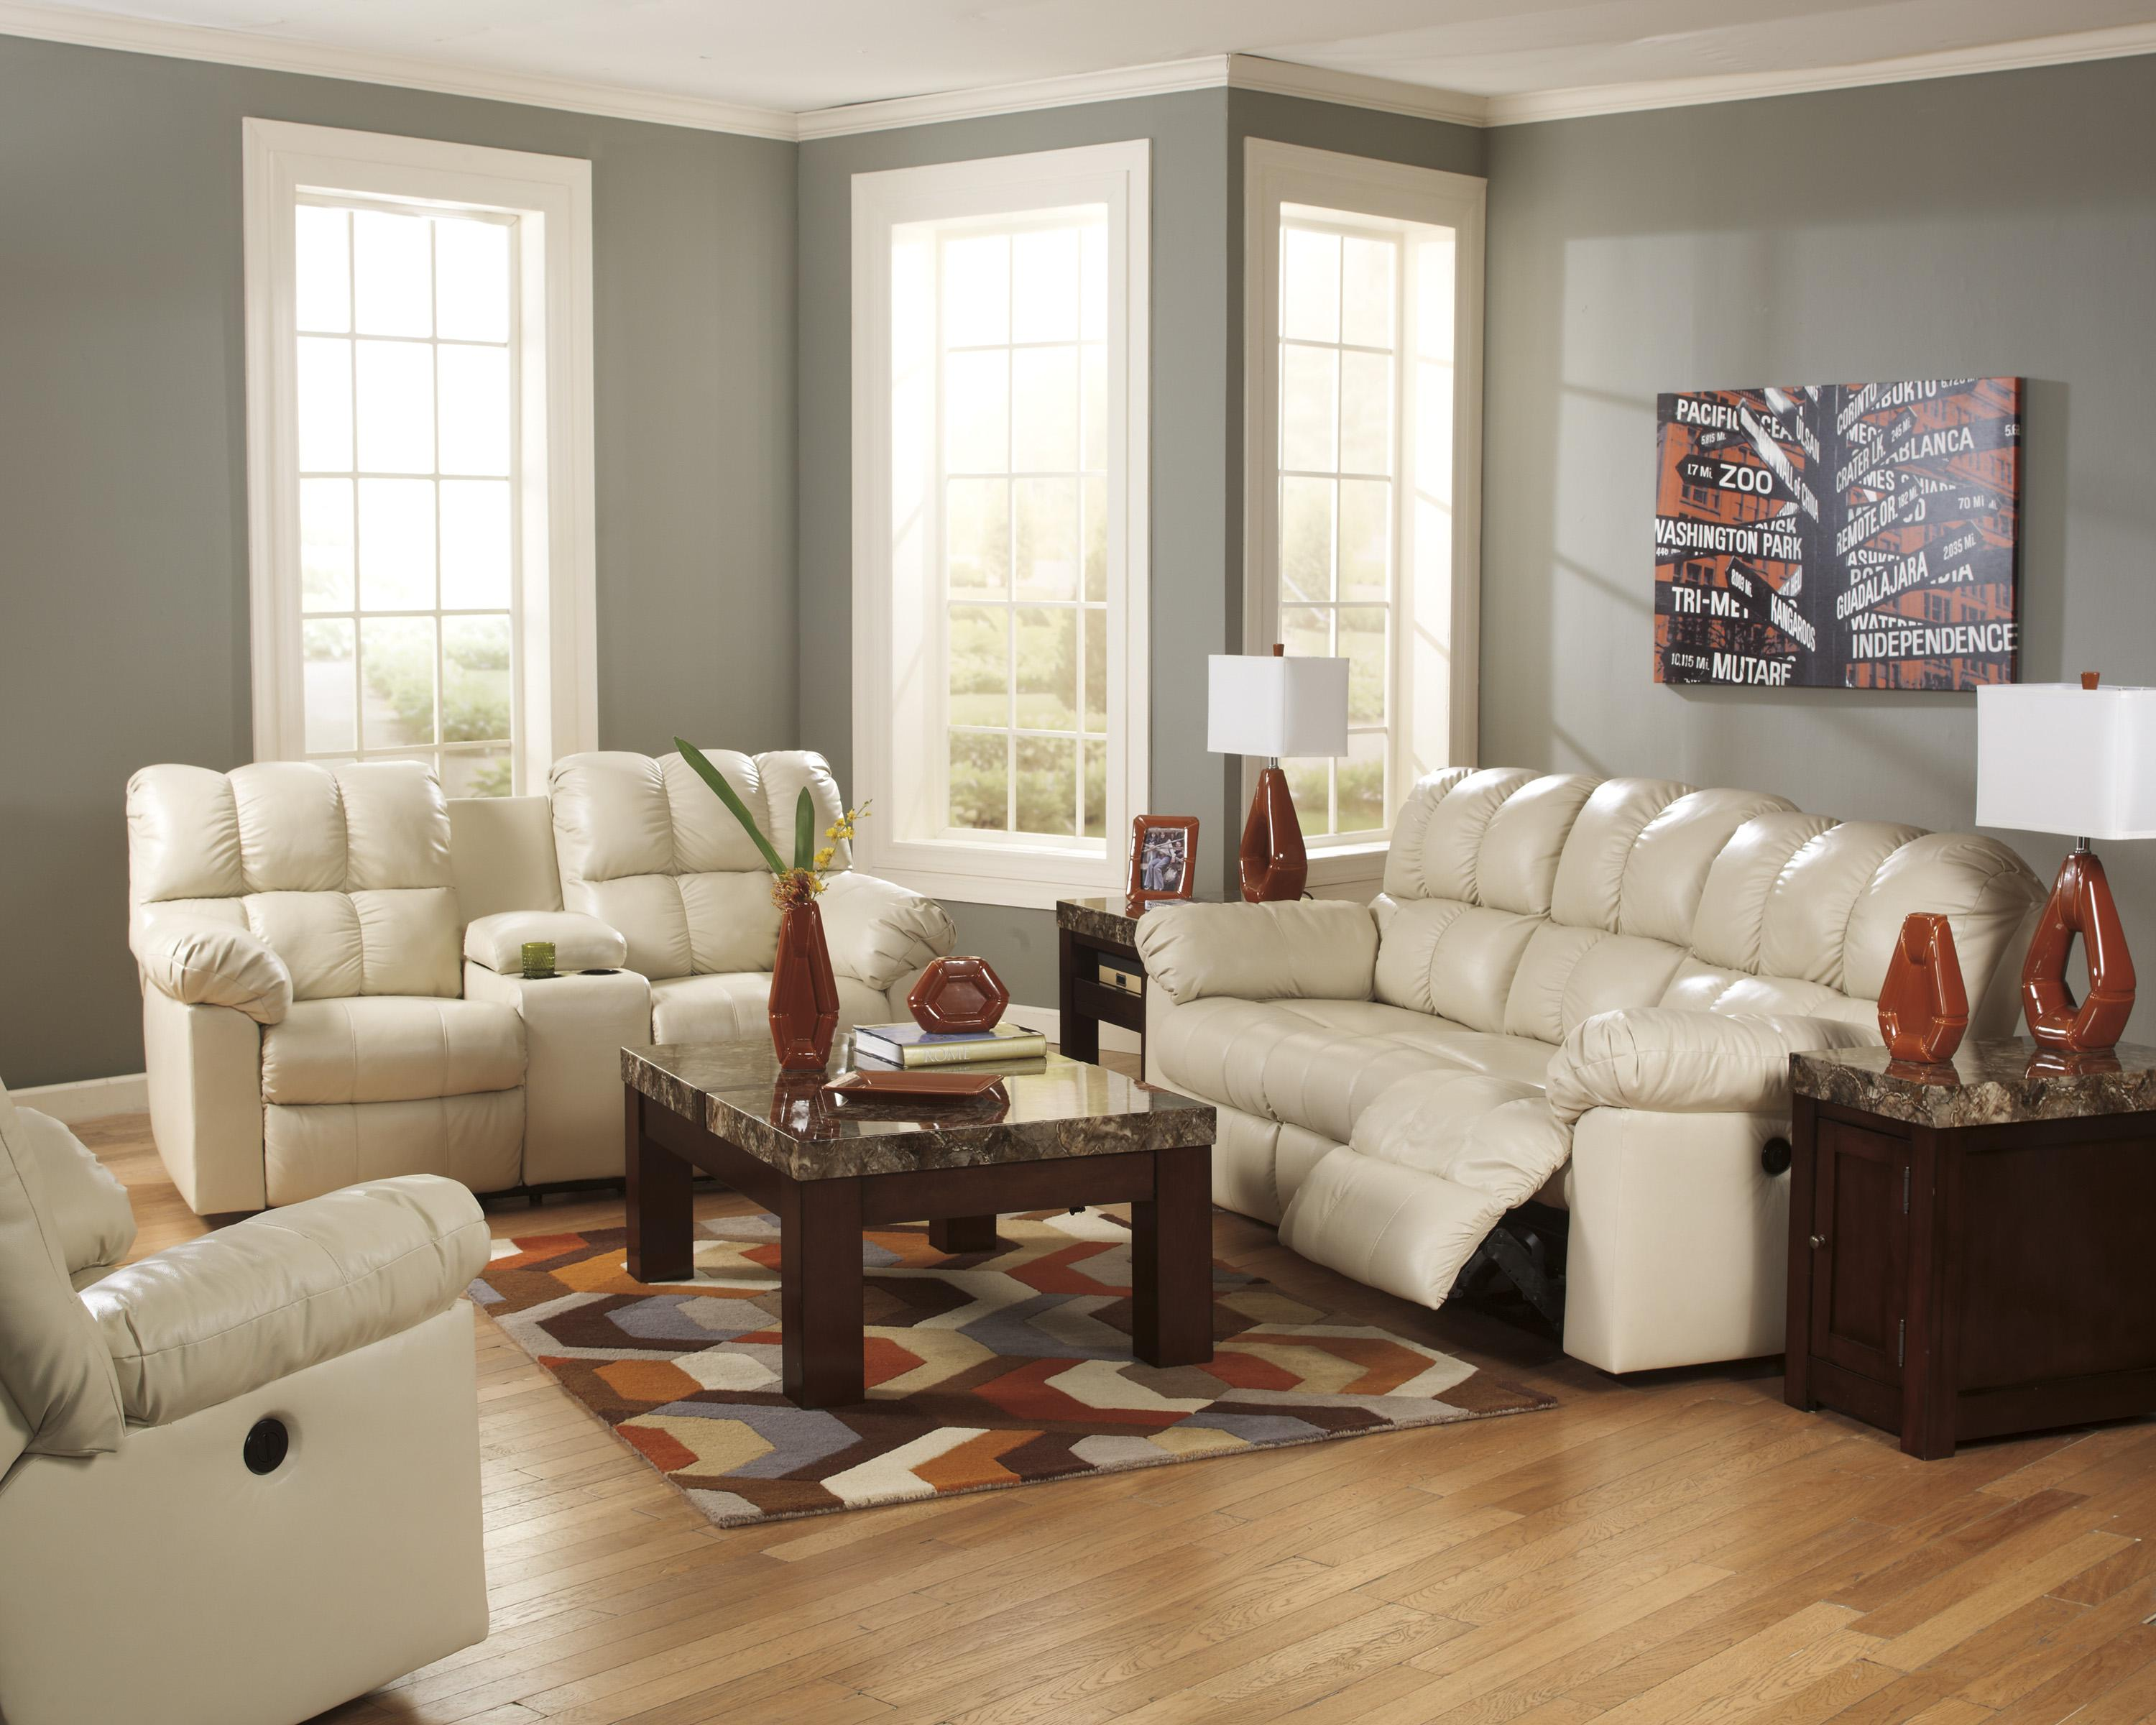 Signature Design by Ashley Kennard - Cream Reclining Living Room Group - Item Number: 29002 Living Room Group 6